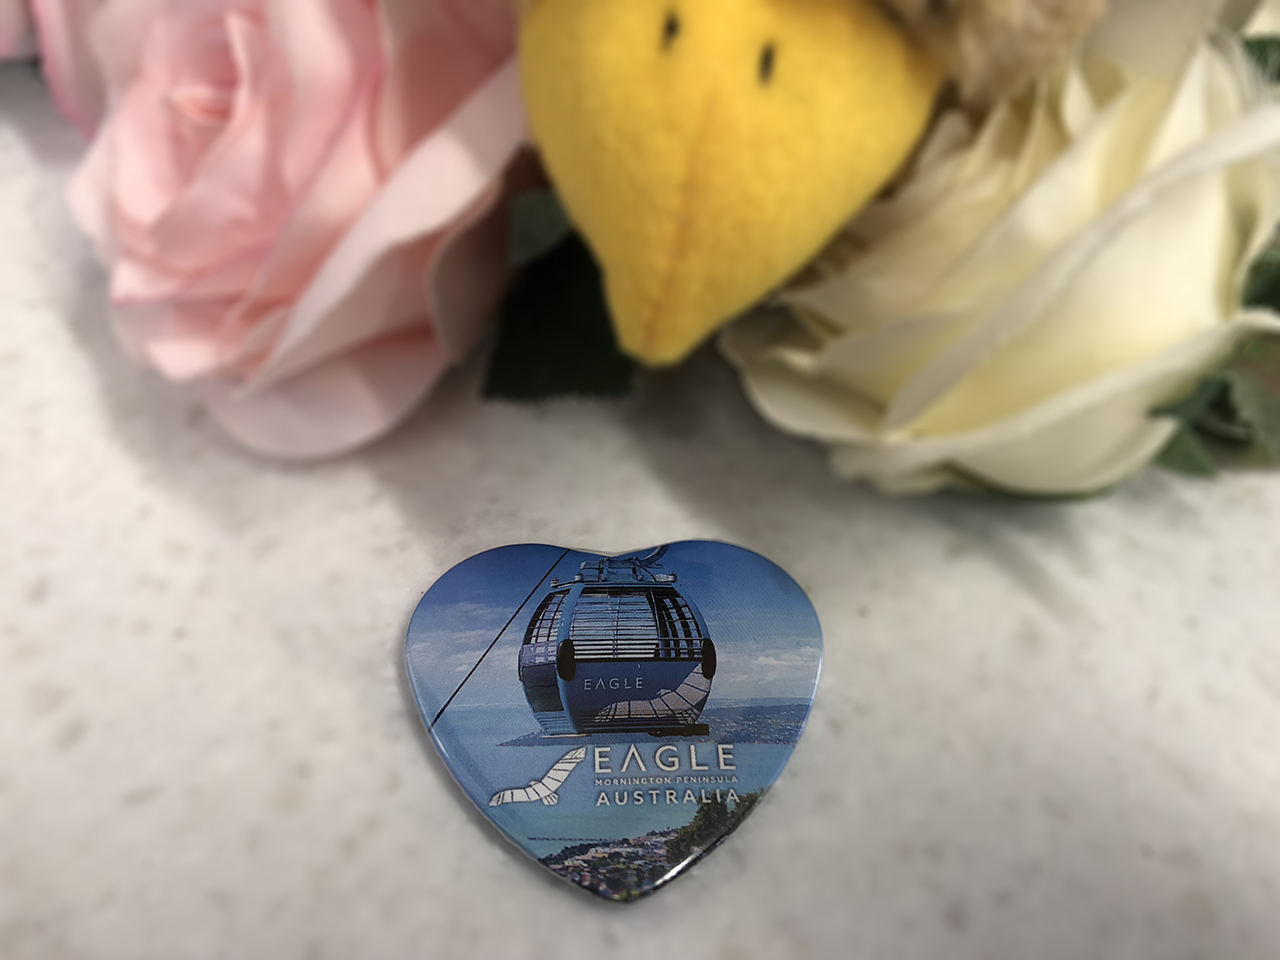 A heart shaped magnet for the fridge so she can remember her great day out.